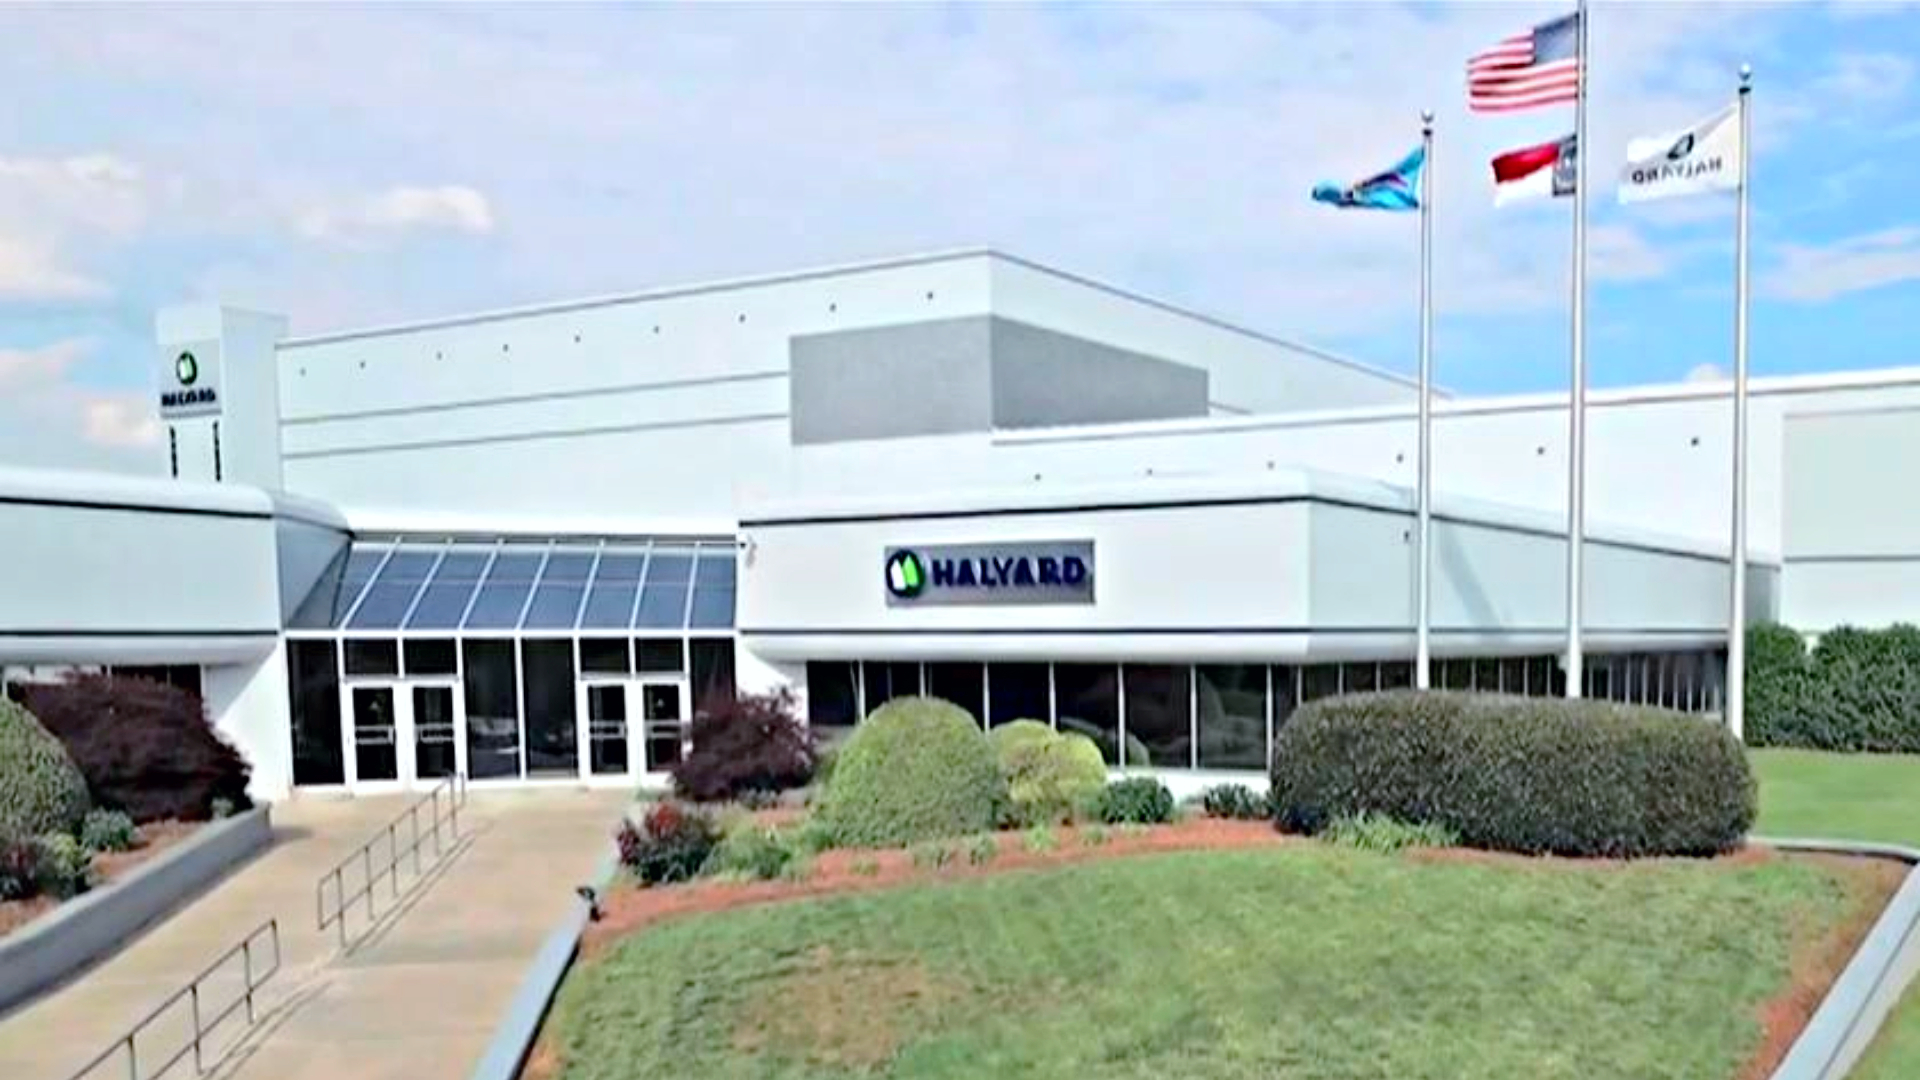 Halyard Lexington, NC Manufacturing Facility